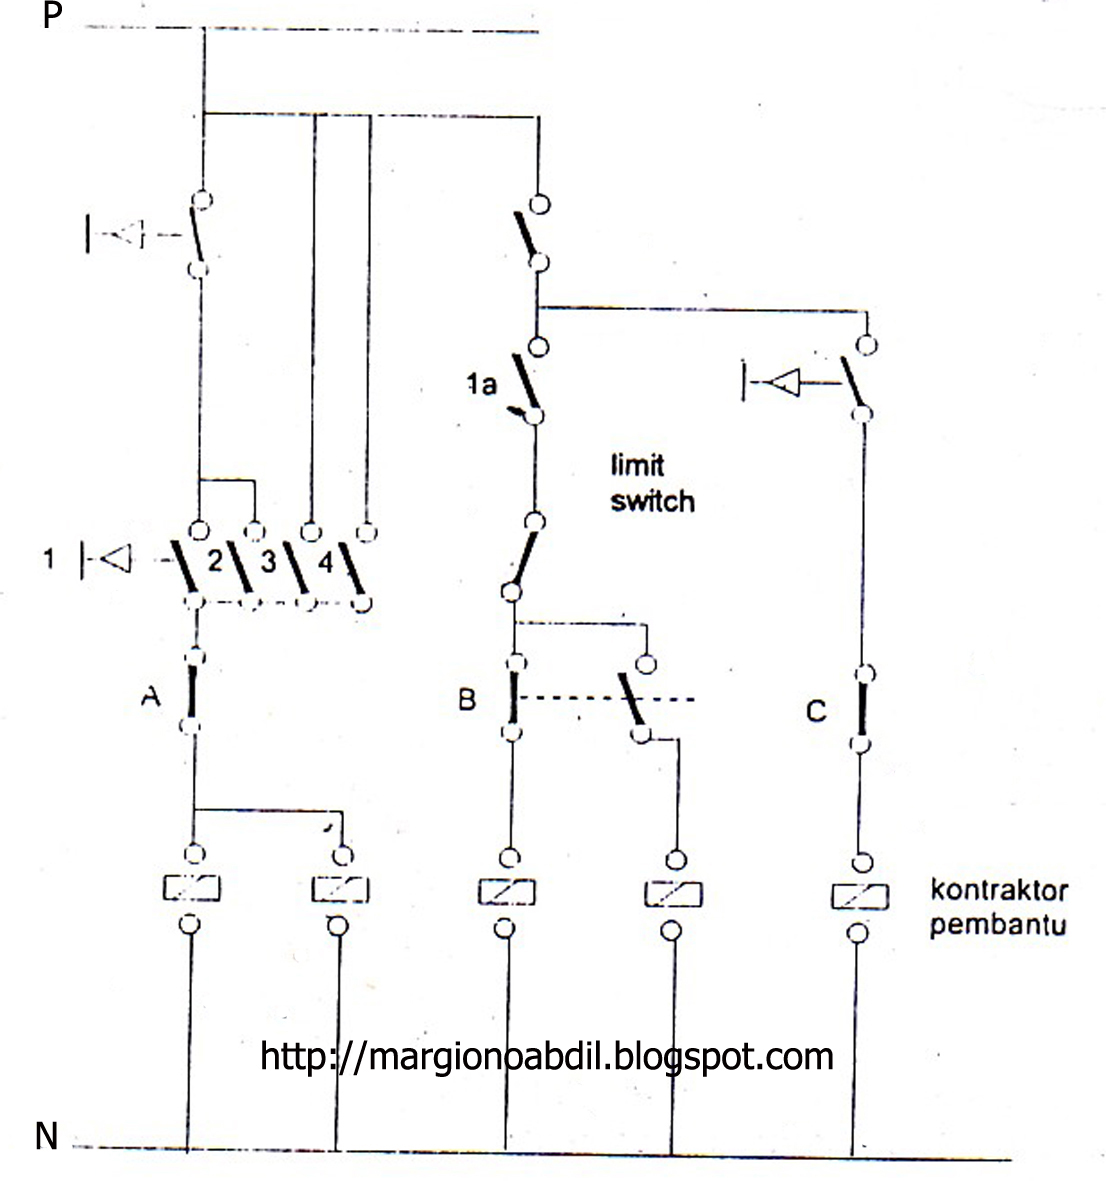 Wiring Diagram Motor 1 Fasa Schematic Diagram Today